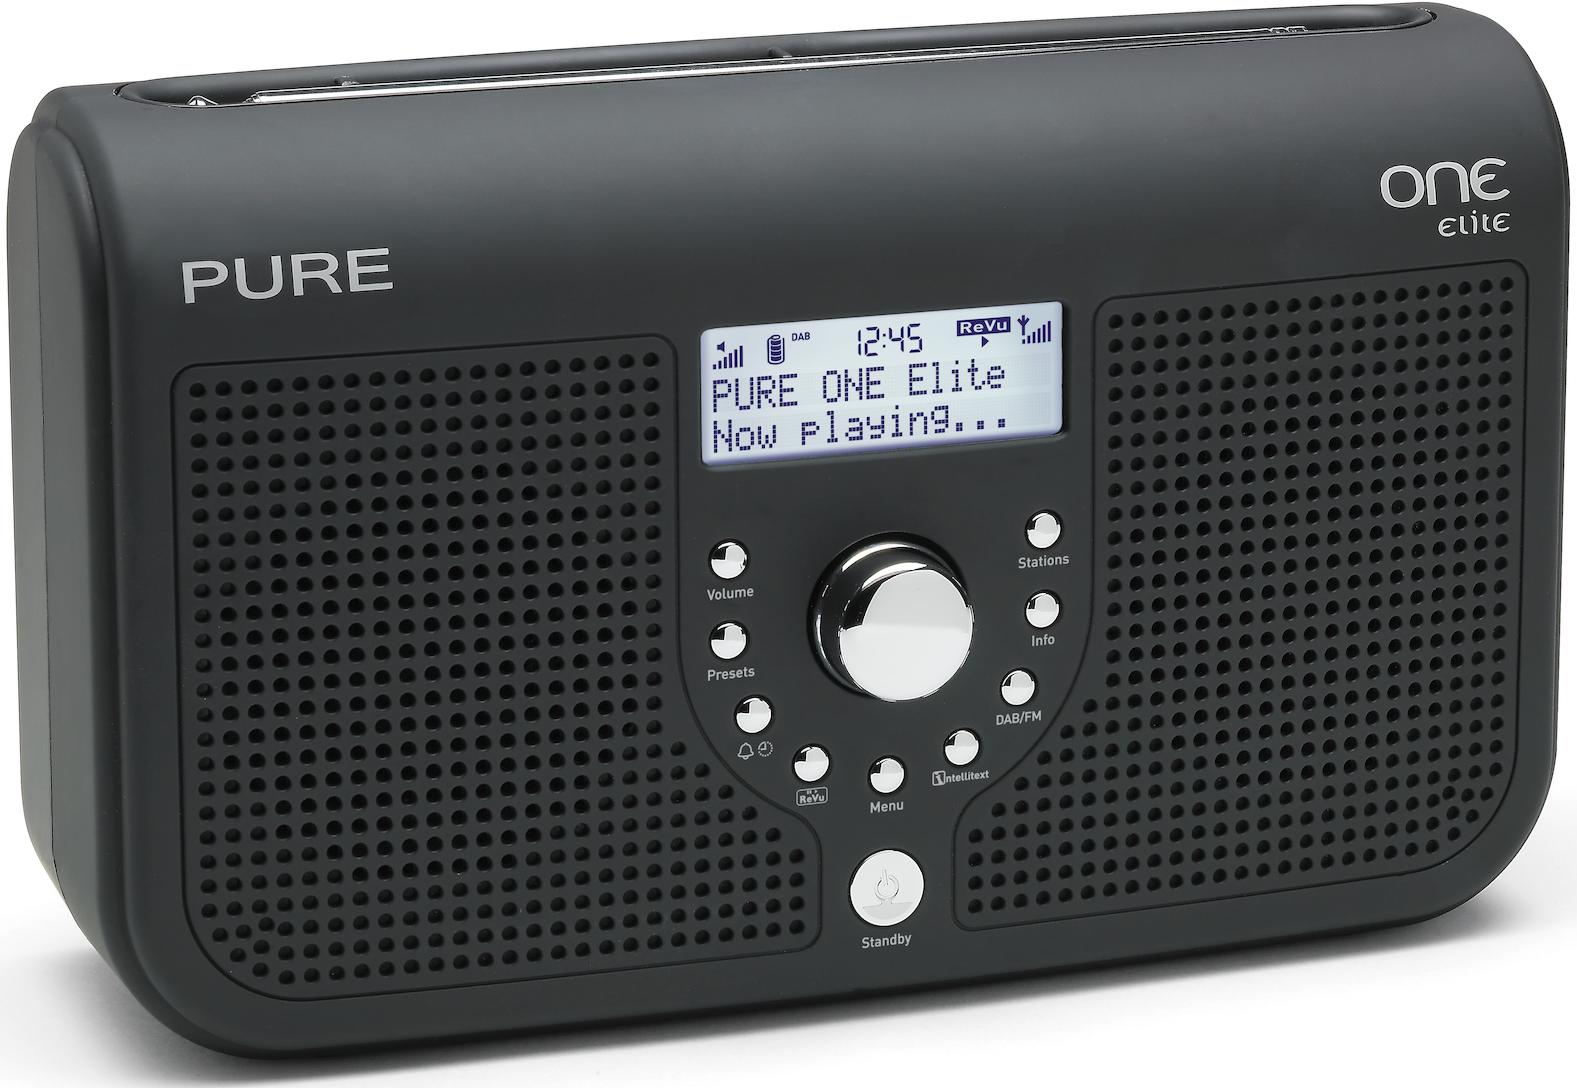 PURE One Elite DAB / FM Alarm Clock Radio